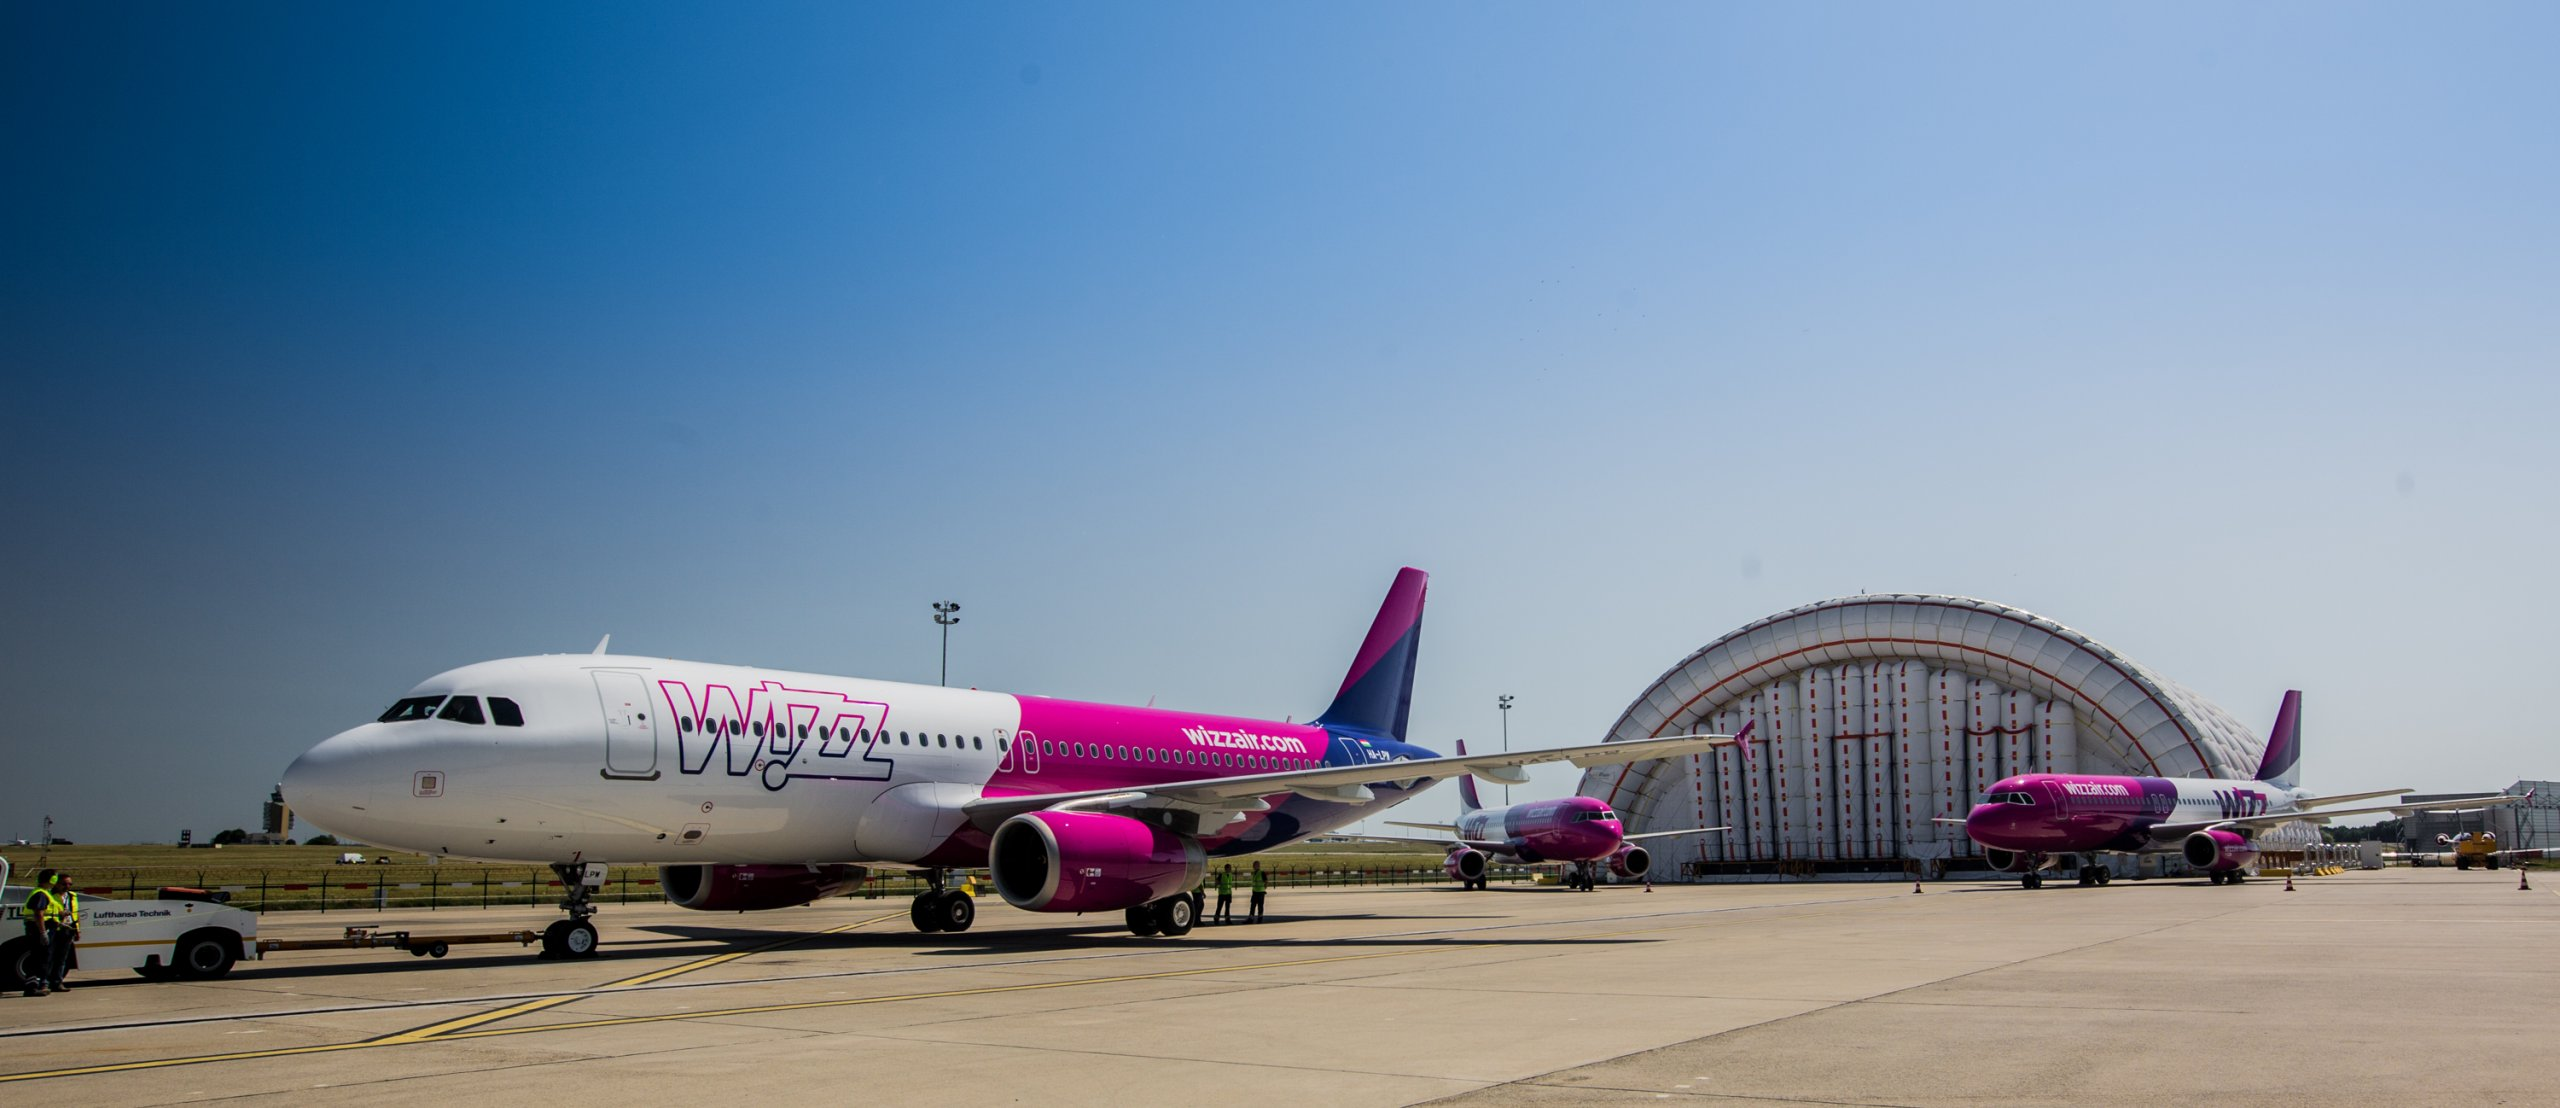 Wizz Air was the last airline that talked about digital trends on the Diggintravel Podcasts